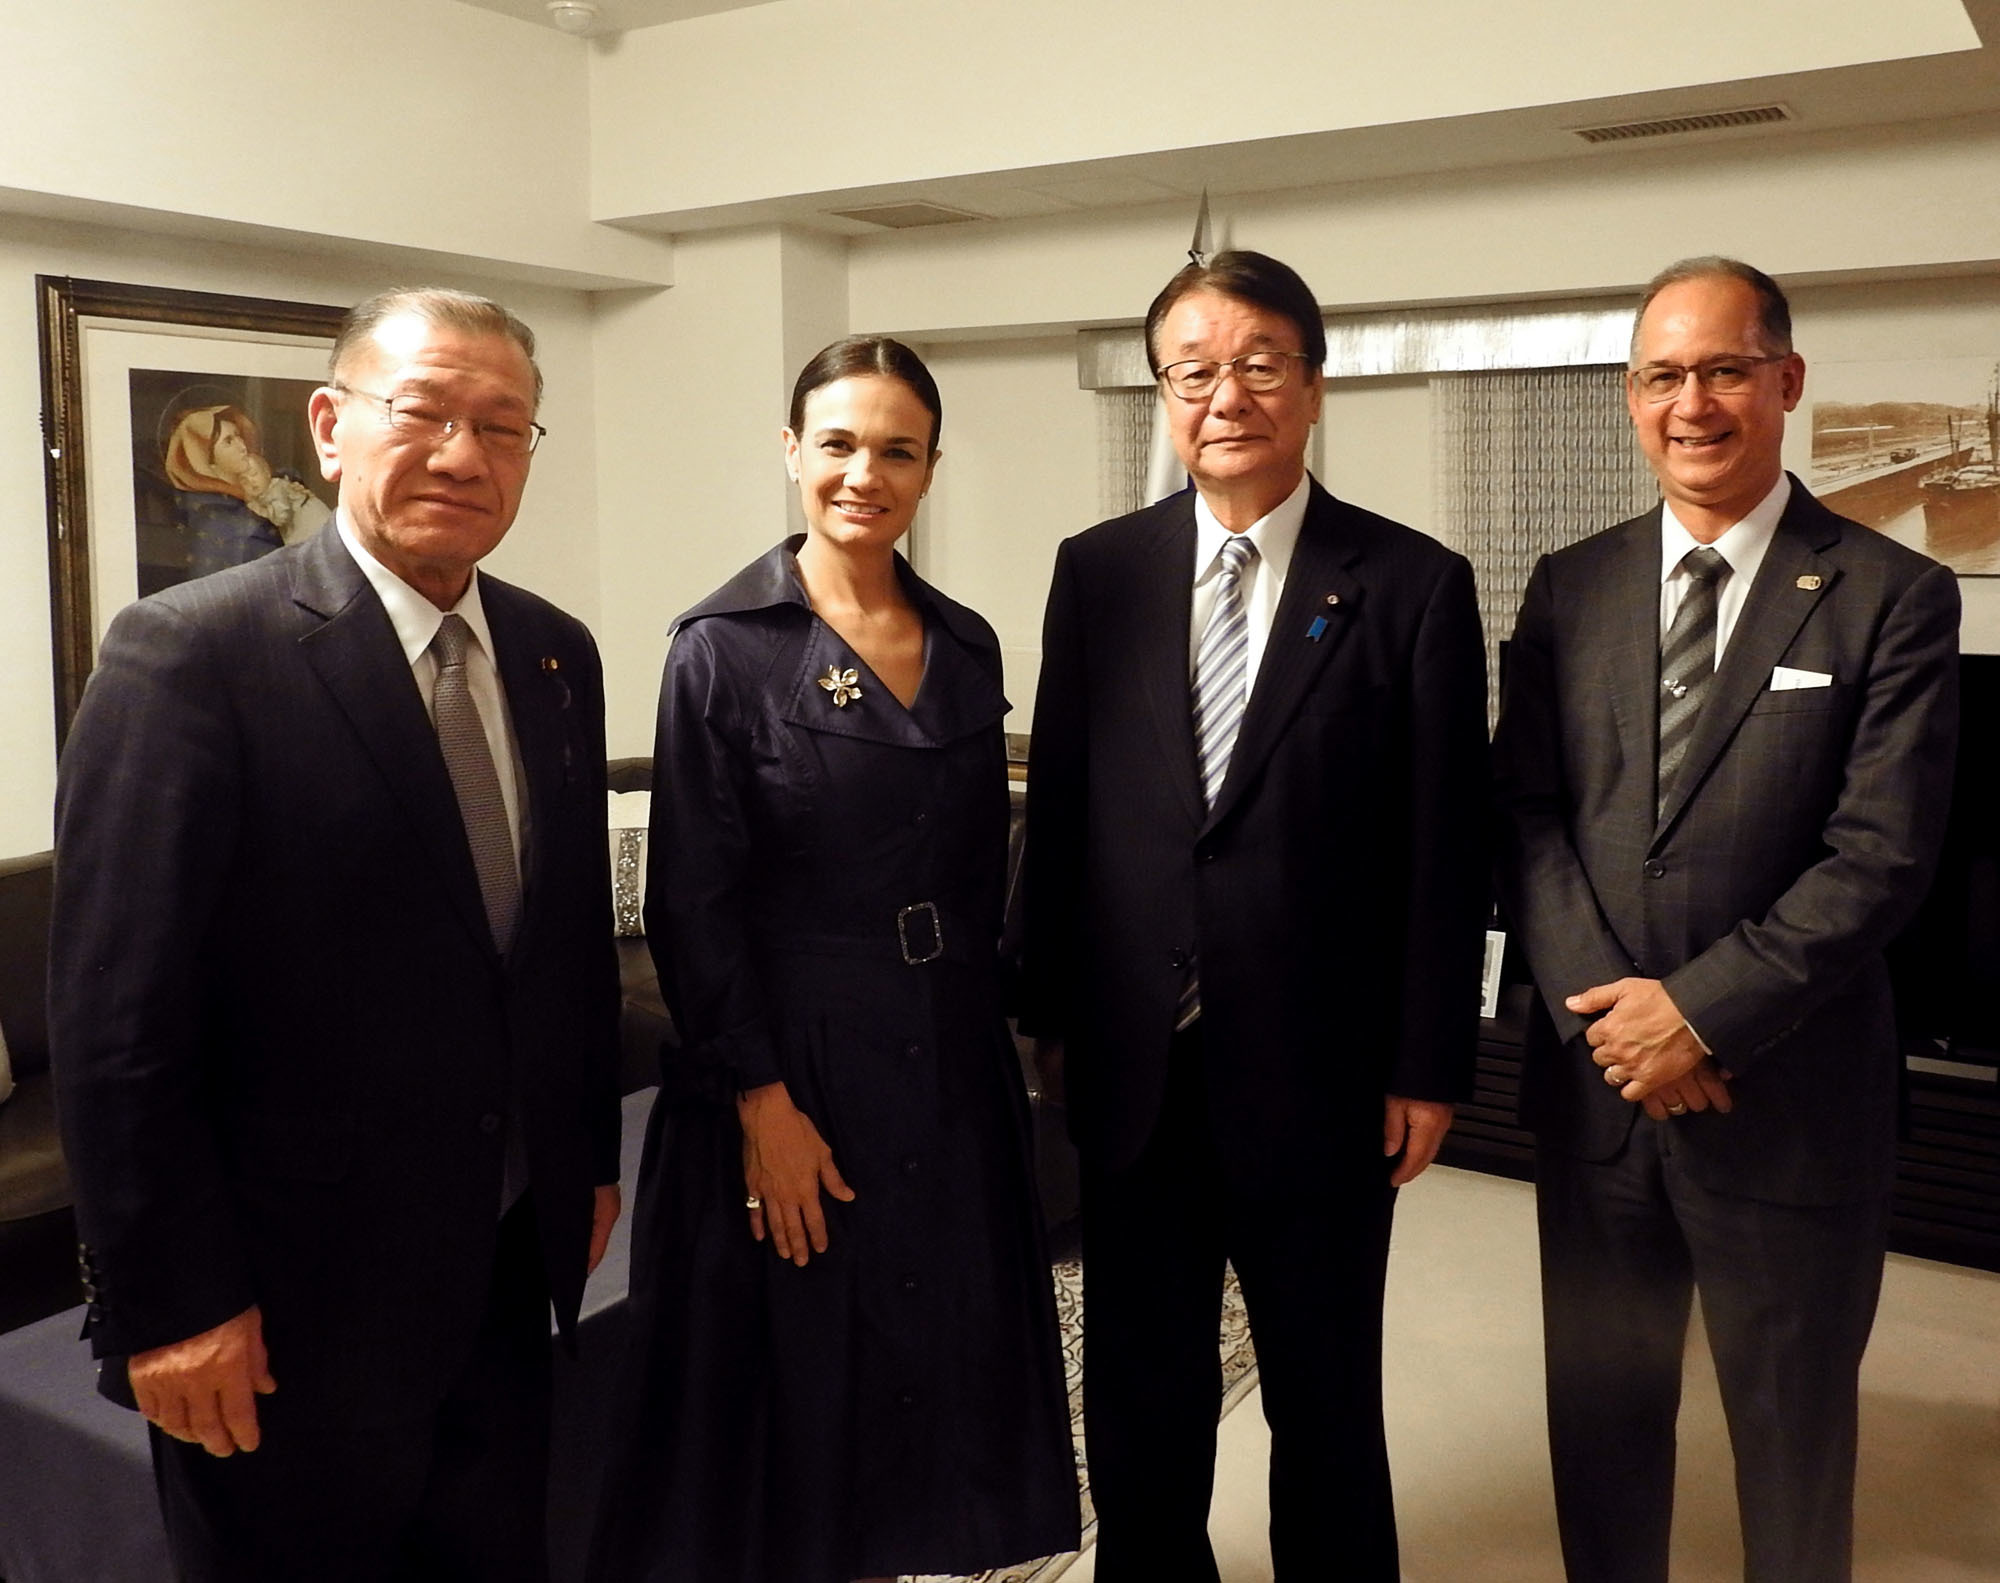 Vice-President and Minister of Foreign Affairs of Panama Isabel De Saint Malo de Alvarado (second from left) poses with (from left) Minister of State for Okinawa and Northern Territories Affairs Mitsuhiro Miyakoshi; National Public Safety Commission Chairman and Minister of State for Disaster Management Junzo Yamamoto; and Panamanian Ambassador Ritter Diaz at a cocktail reception hosted at the ambassador's residence on March 20. |  COURTESY OF THE PANAMA EMBASSY